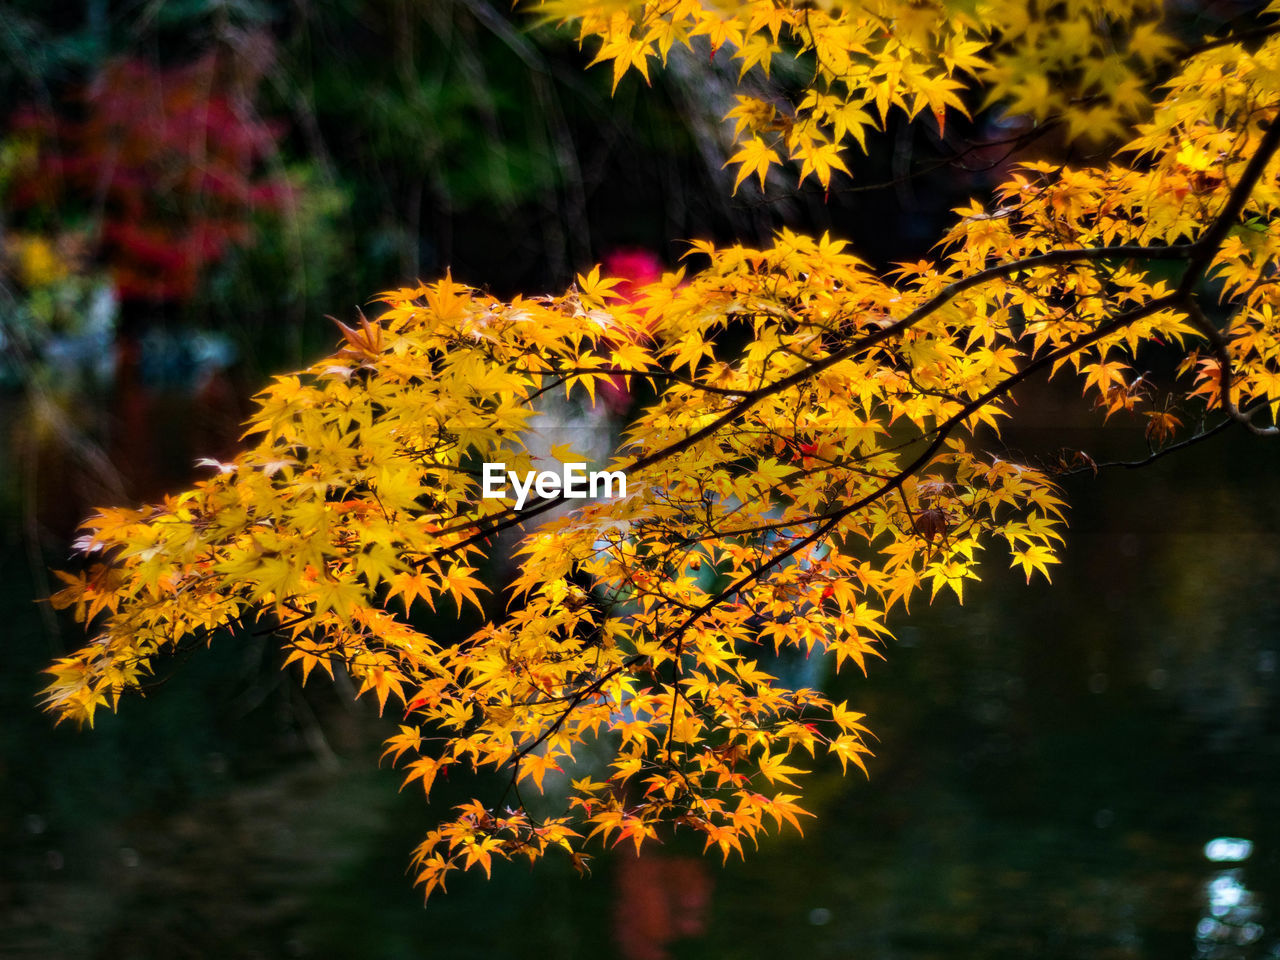 nature, beauty in nature, tree, autumn, leaf, no people, one animal, growth, animal themes, change, outdoors, flower, animals in the wild, day, branch, close-up, fragility, water, freshness